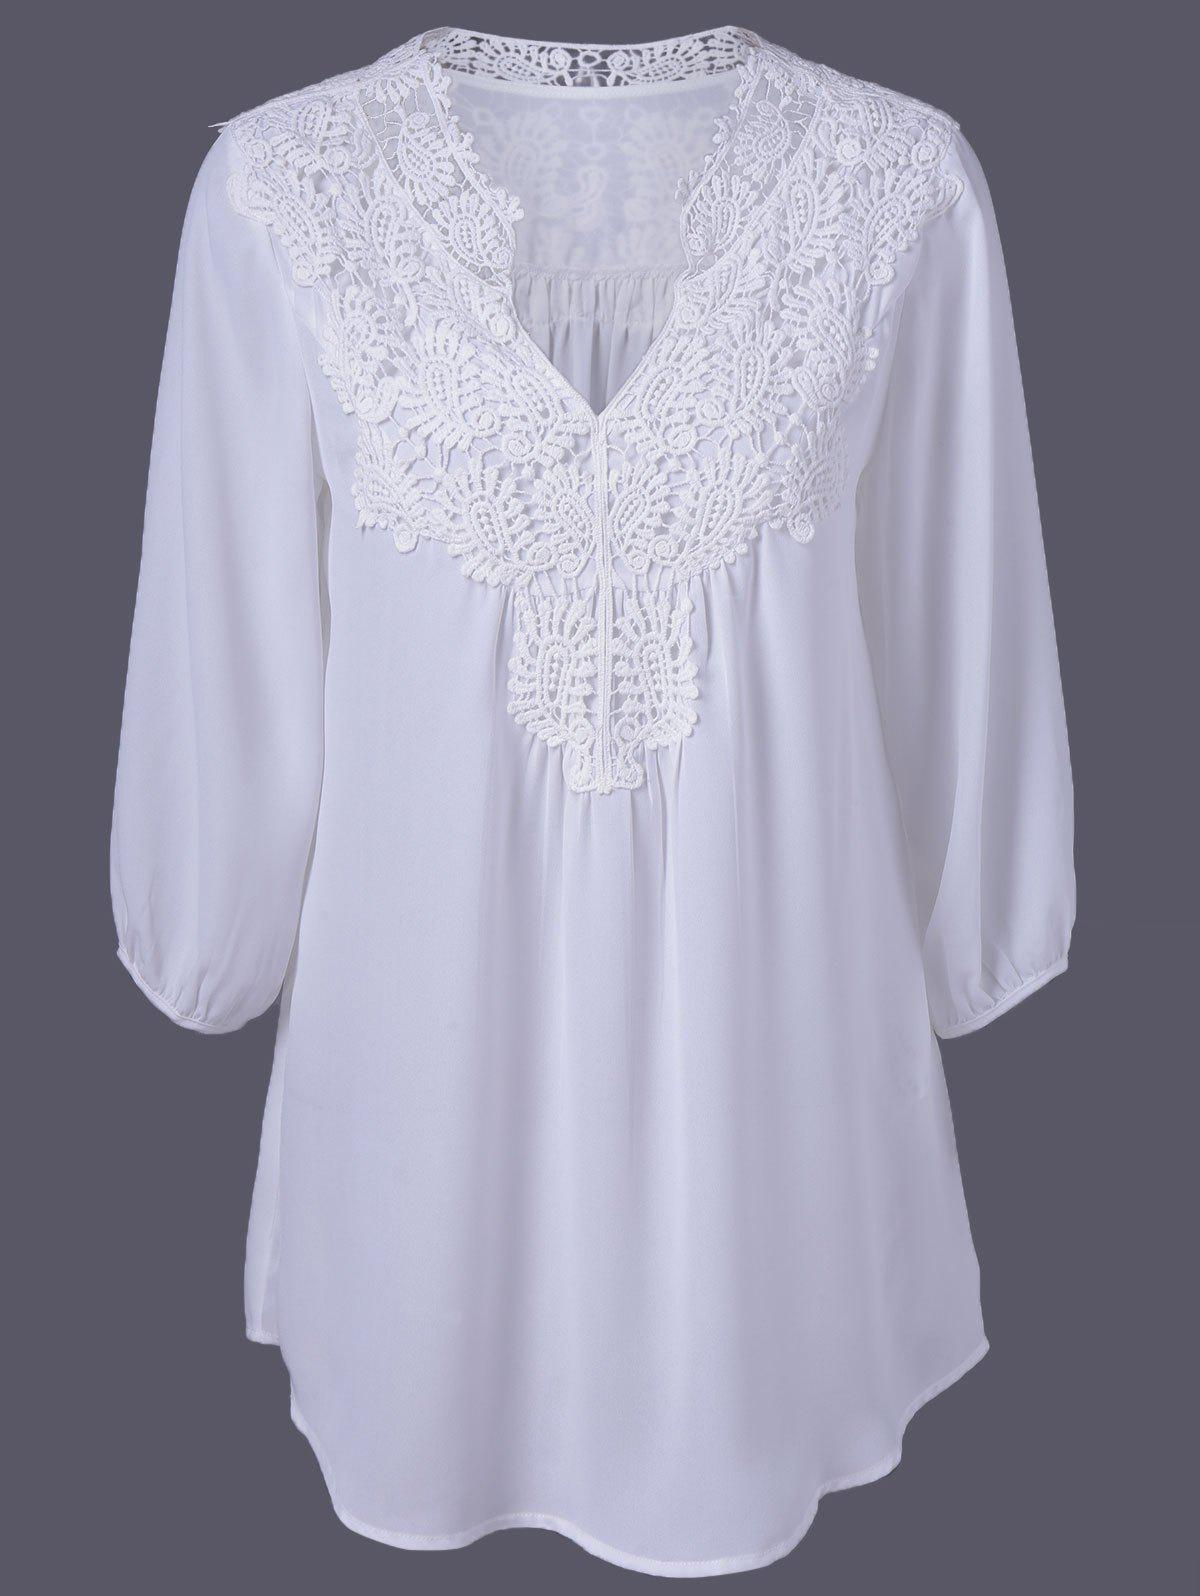 Plus Size Sweet Crochet Spliced Tunic BlouseWOMEN<br><br>Size: 3XL; Color: WHITE; Material: Polyester; Shirt Length: Long; Sleeve Length: Three Quarter; Collar: V-Neck; Style: Casual; Season: Summer; Pattern Type: Patchwork; Weight: 0.2310kg; Package Contents: 1 x Blouse;